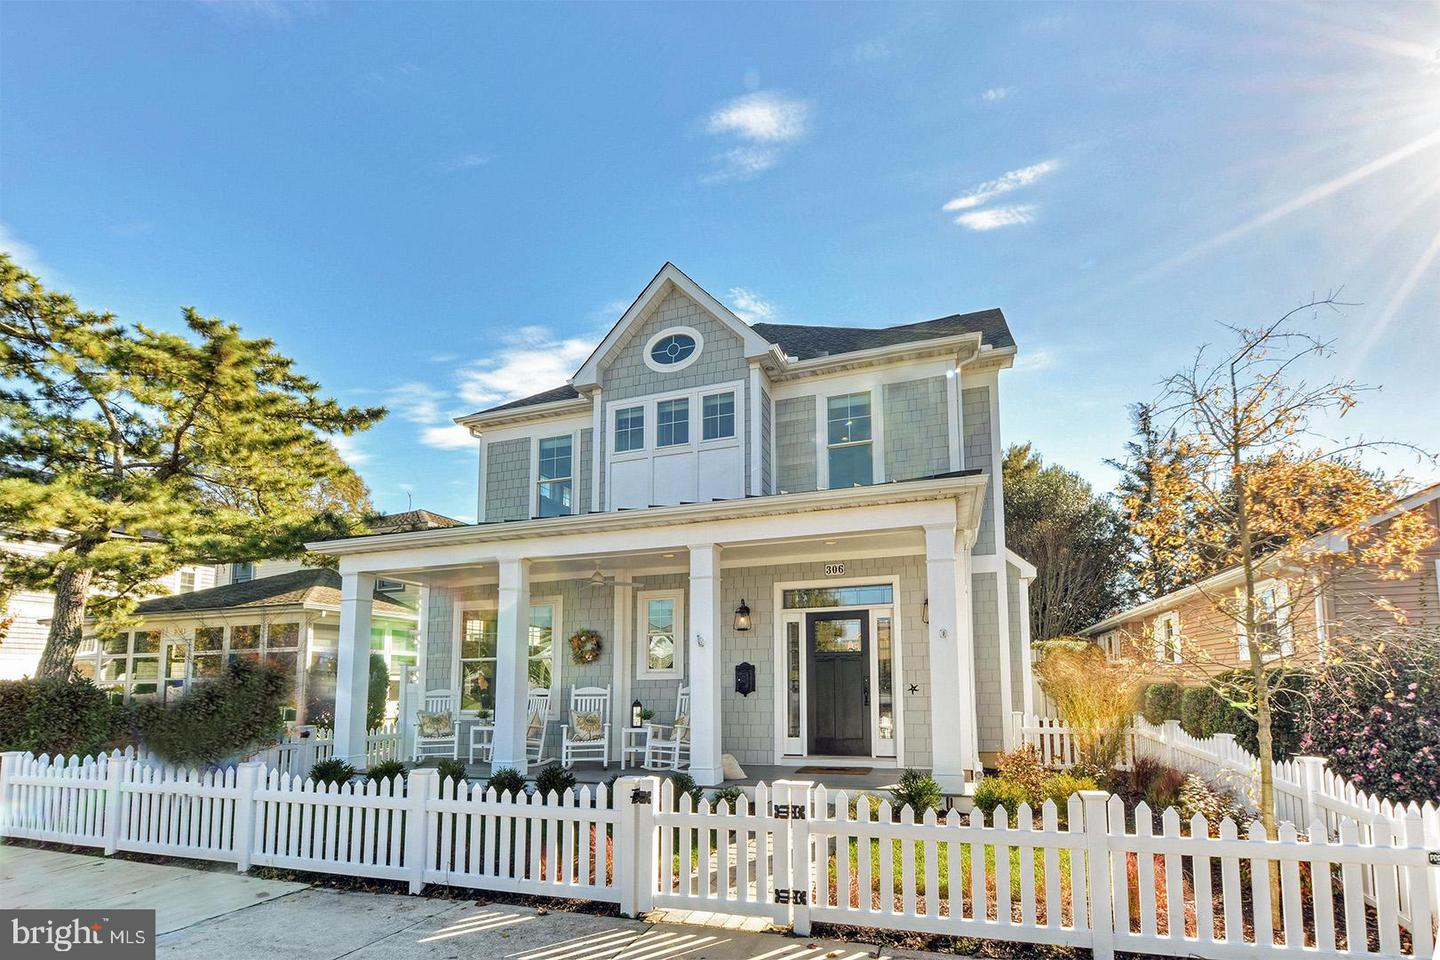 DESU155238-304012678898-2020-02-05-13-10-11 Sold Listings - Rehoboth Beach Real Estate - Bryce Lingo and Shaun Tull REALTORS, Rehoboth Beach, Delaware